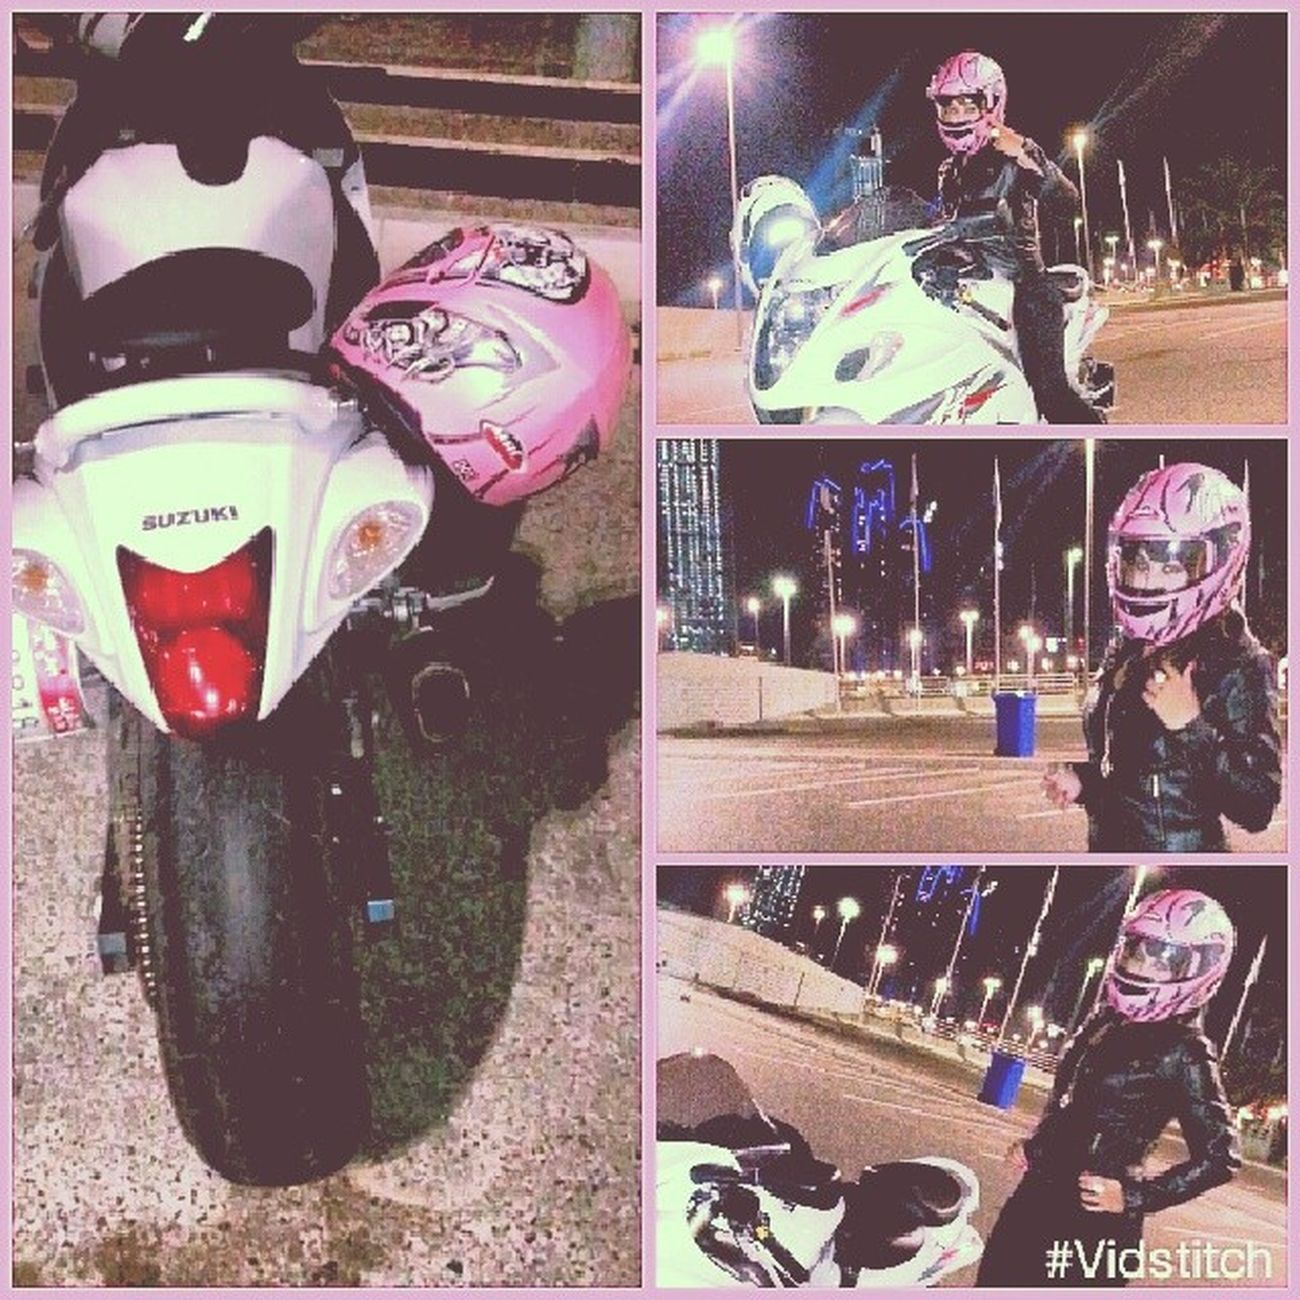 Biketime Hayabusa Happy Amazing bikergirl uae albateen cornish motorcycle biker abudhabi crazy fun loveit yolo ♡♥♡♥♡♥♡♥♡♥